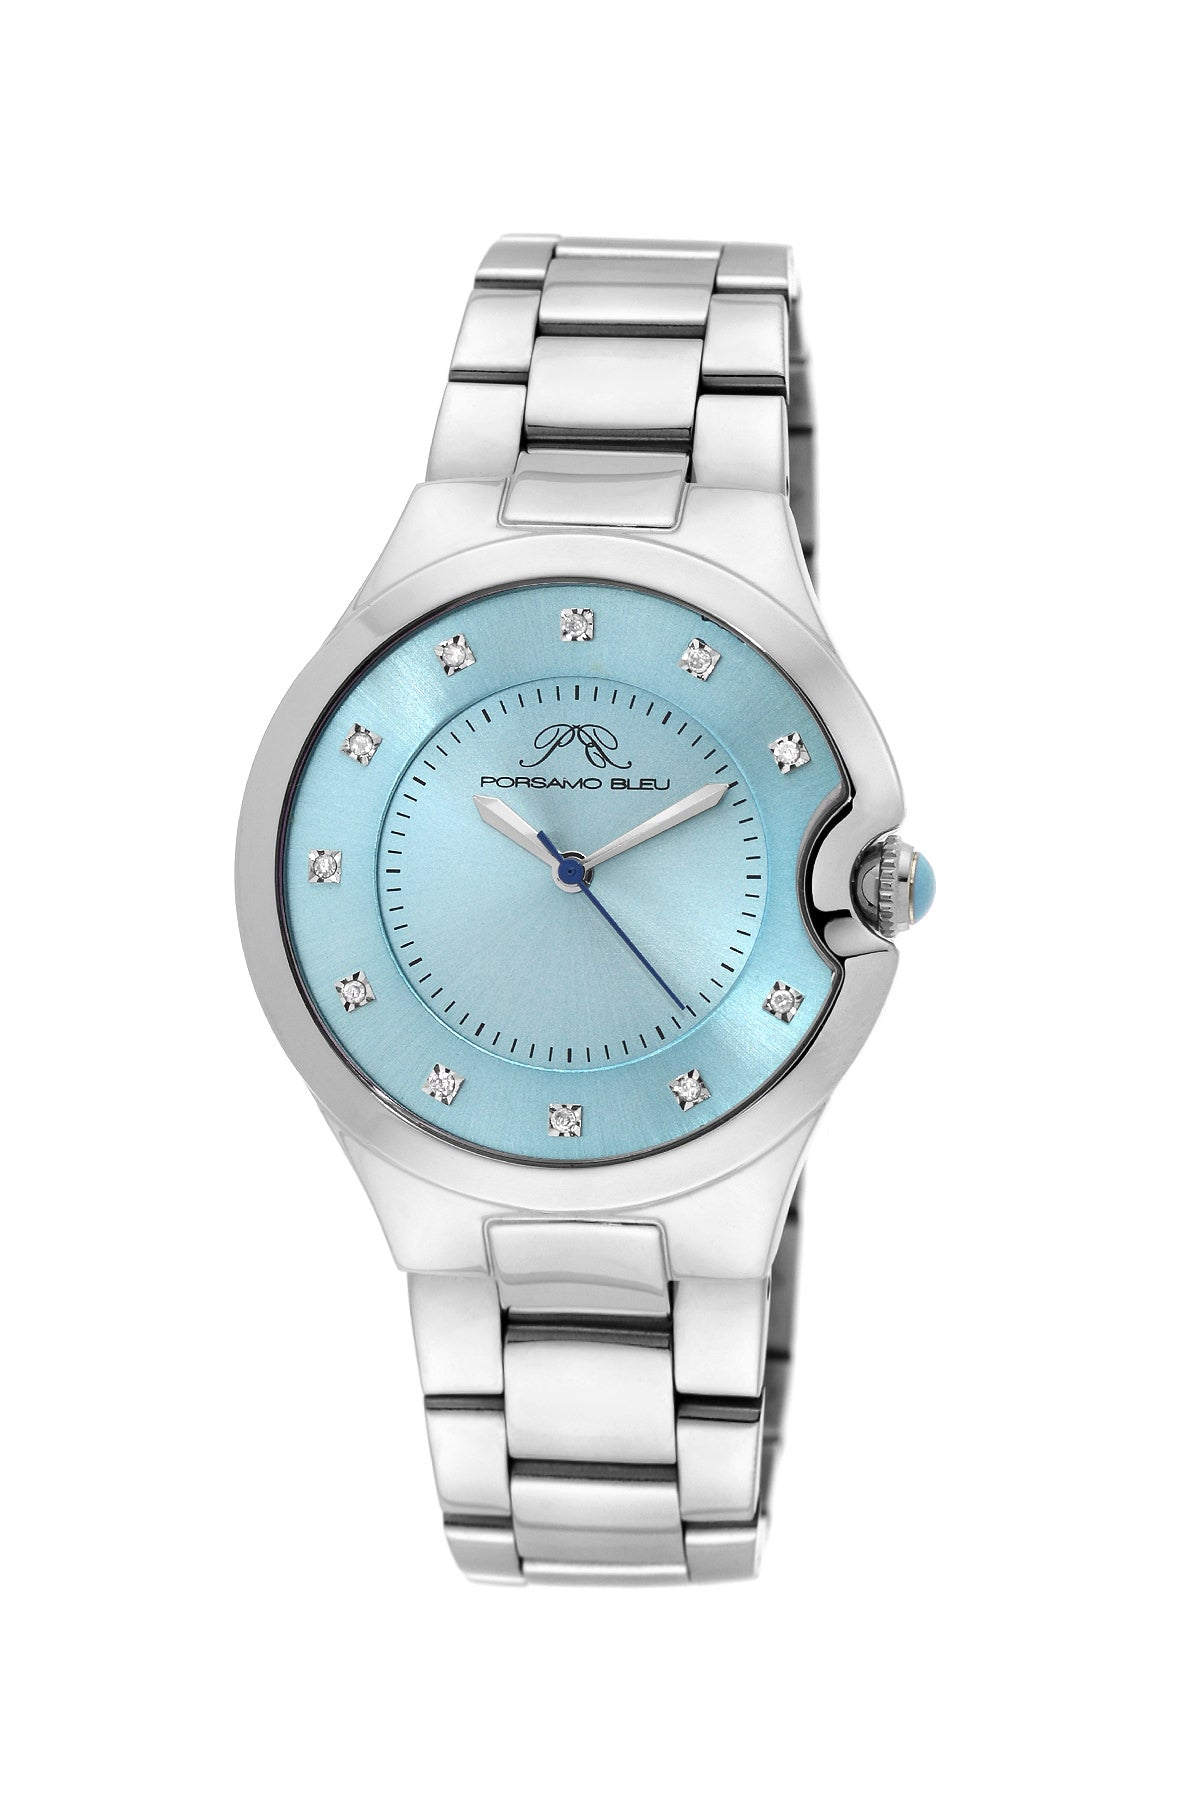 Porsamo Bleu Emilia luxury diamond women's stainless steel watch, silver, blue 822CEMS